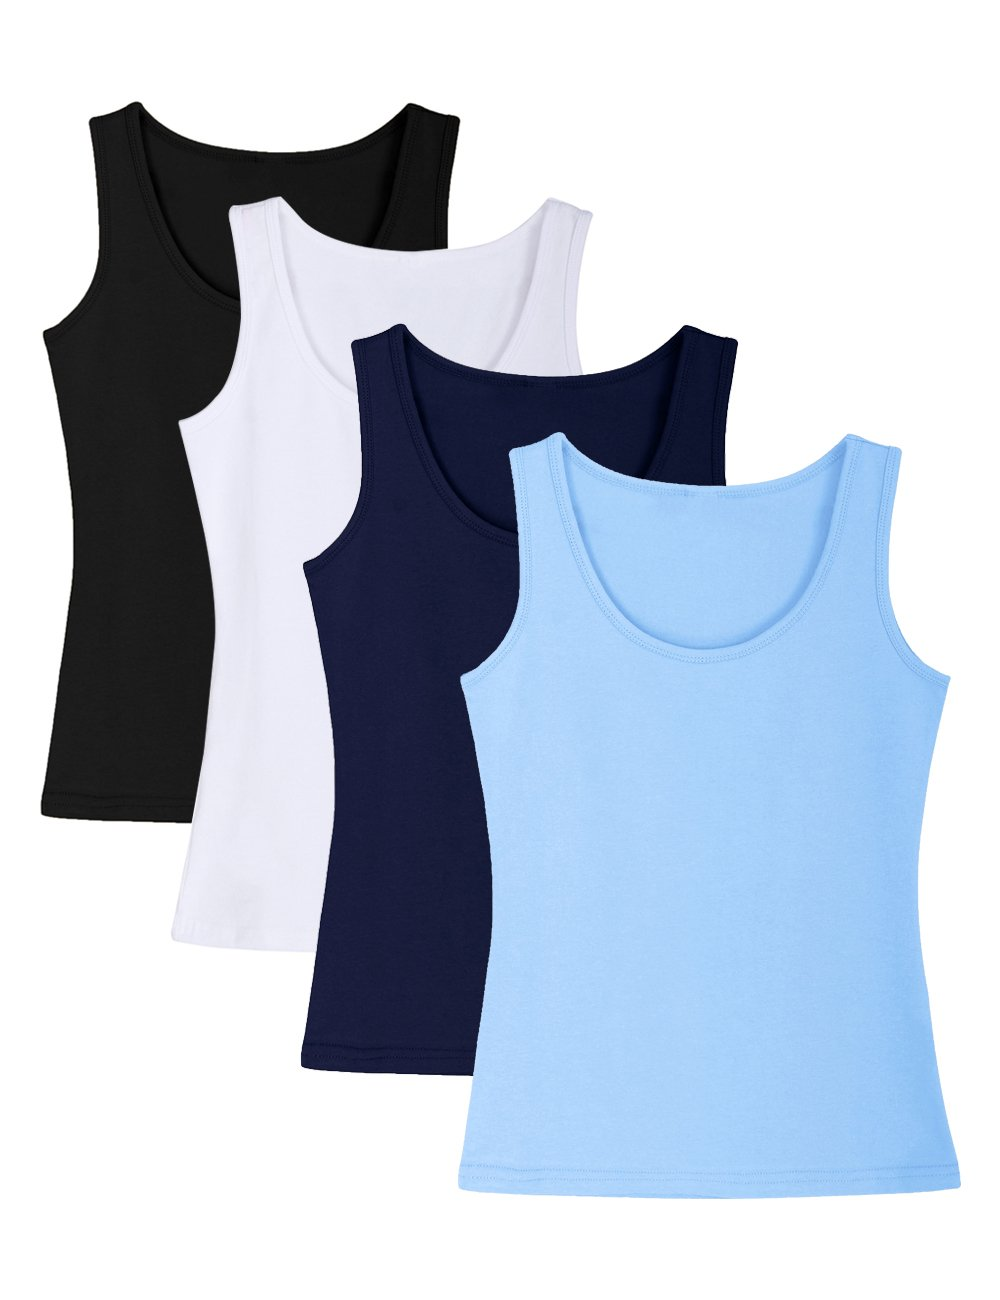 ADAMARIS Cotton Camisoles for Women Tank Tops for Women Pack Camis Vest ,Regular-833-black / White / Navy Blue / Light Blue,X-Small / US 2